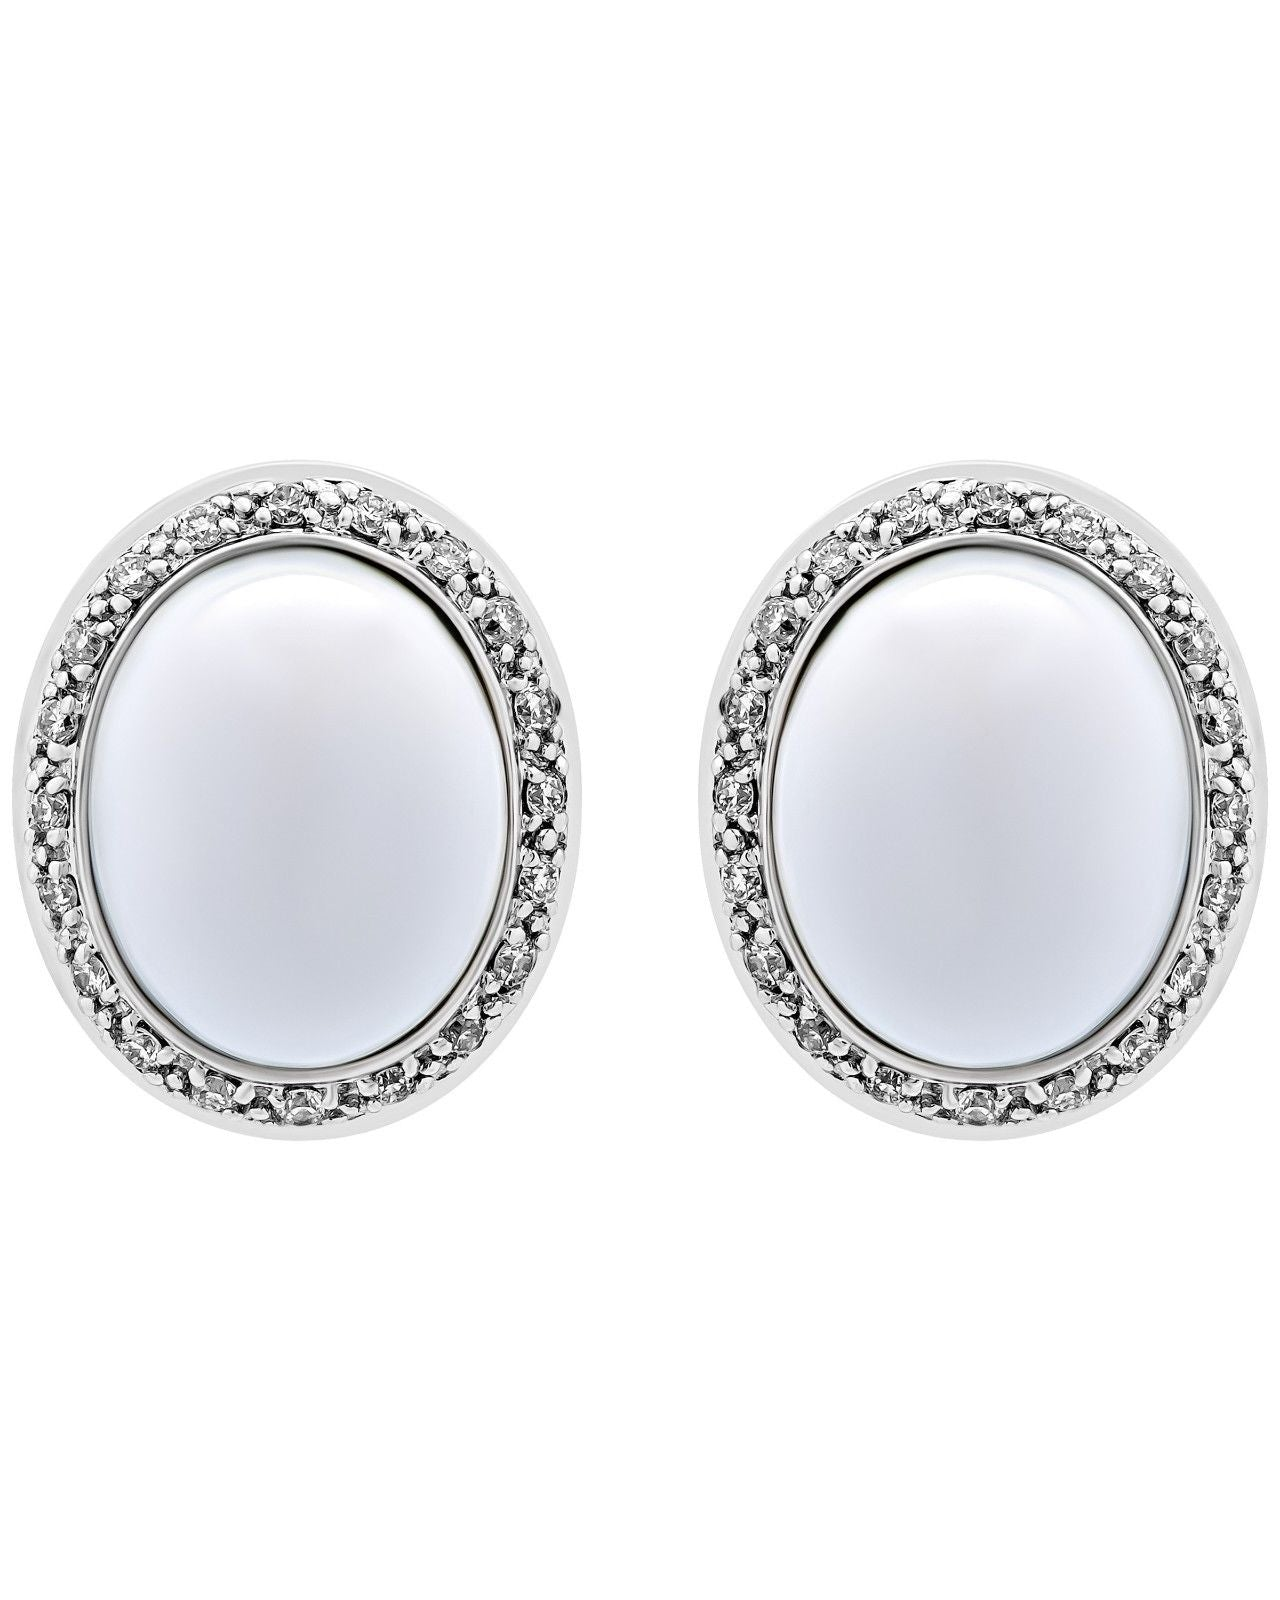 Mimi Milano 18K Rose White Gold, White Agate, Diamonds Earrings O318C8A1B